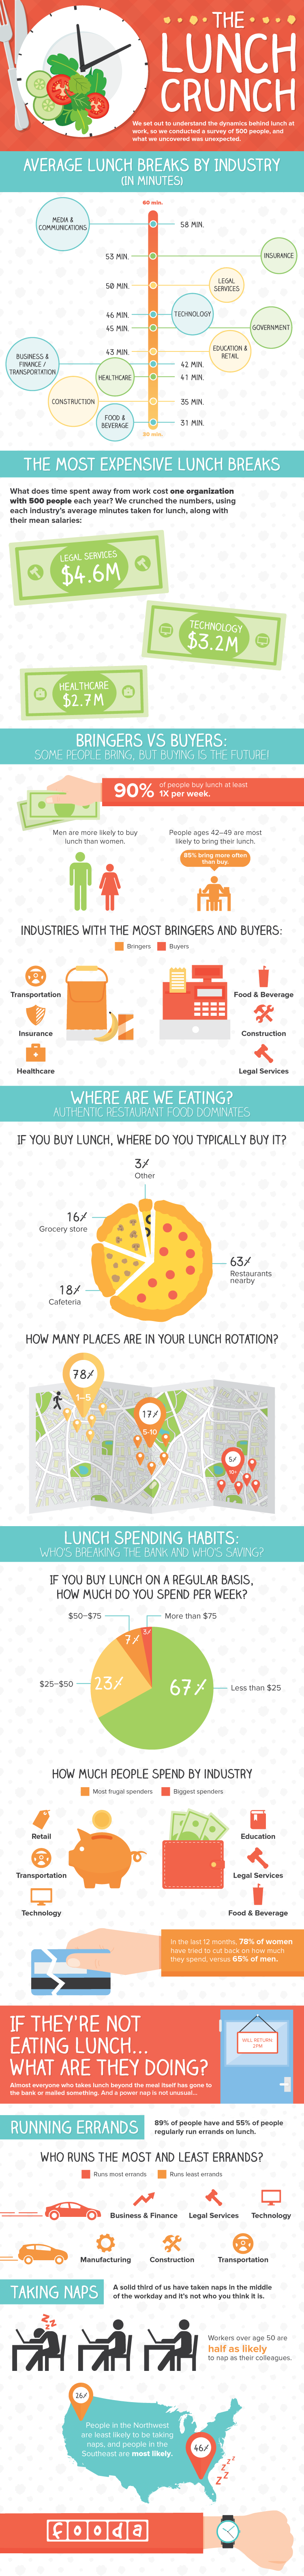 lunch-crunch-infographic-6-30v3-EDITED